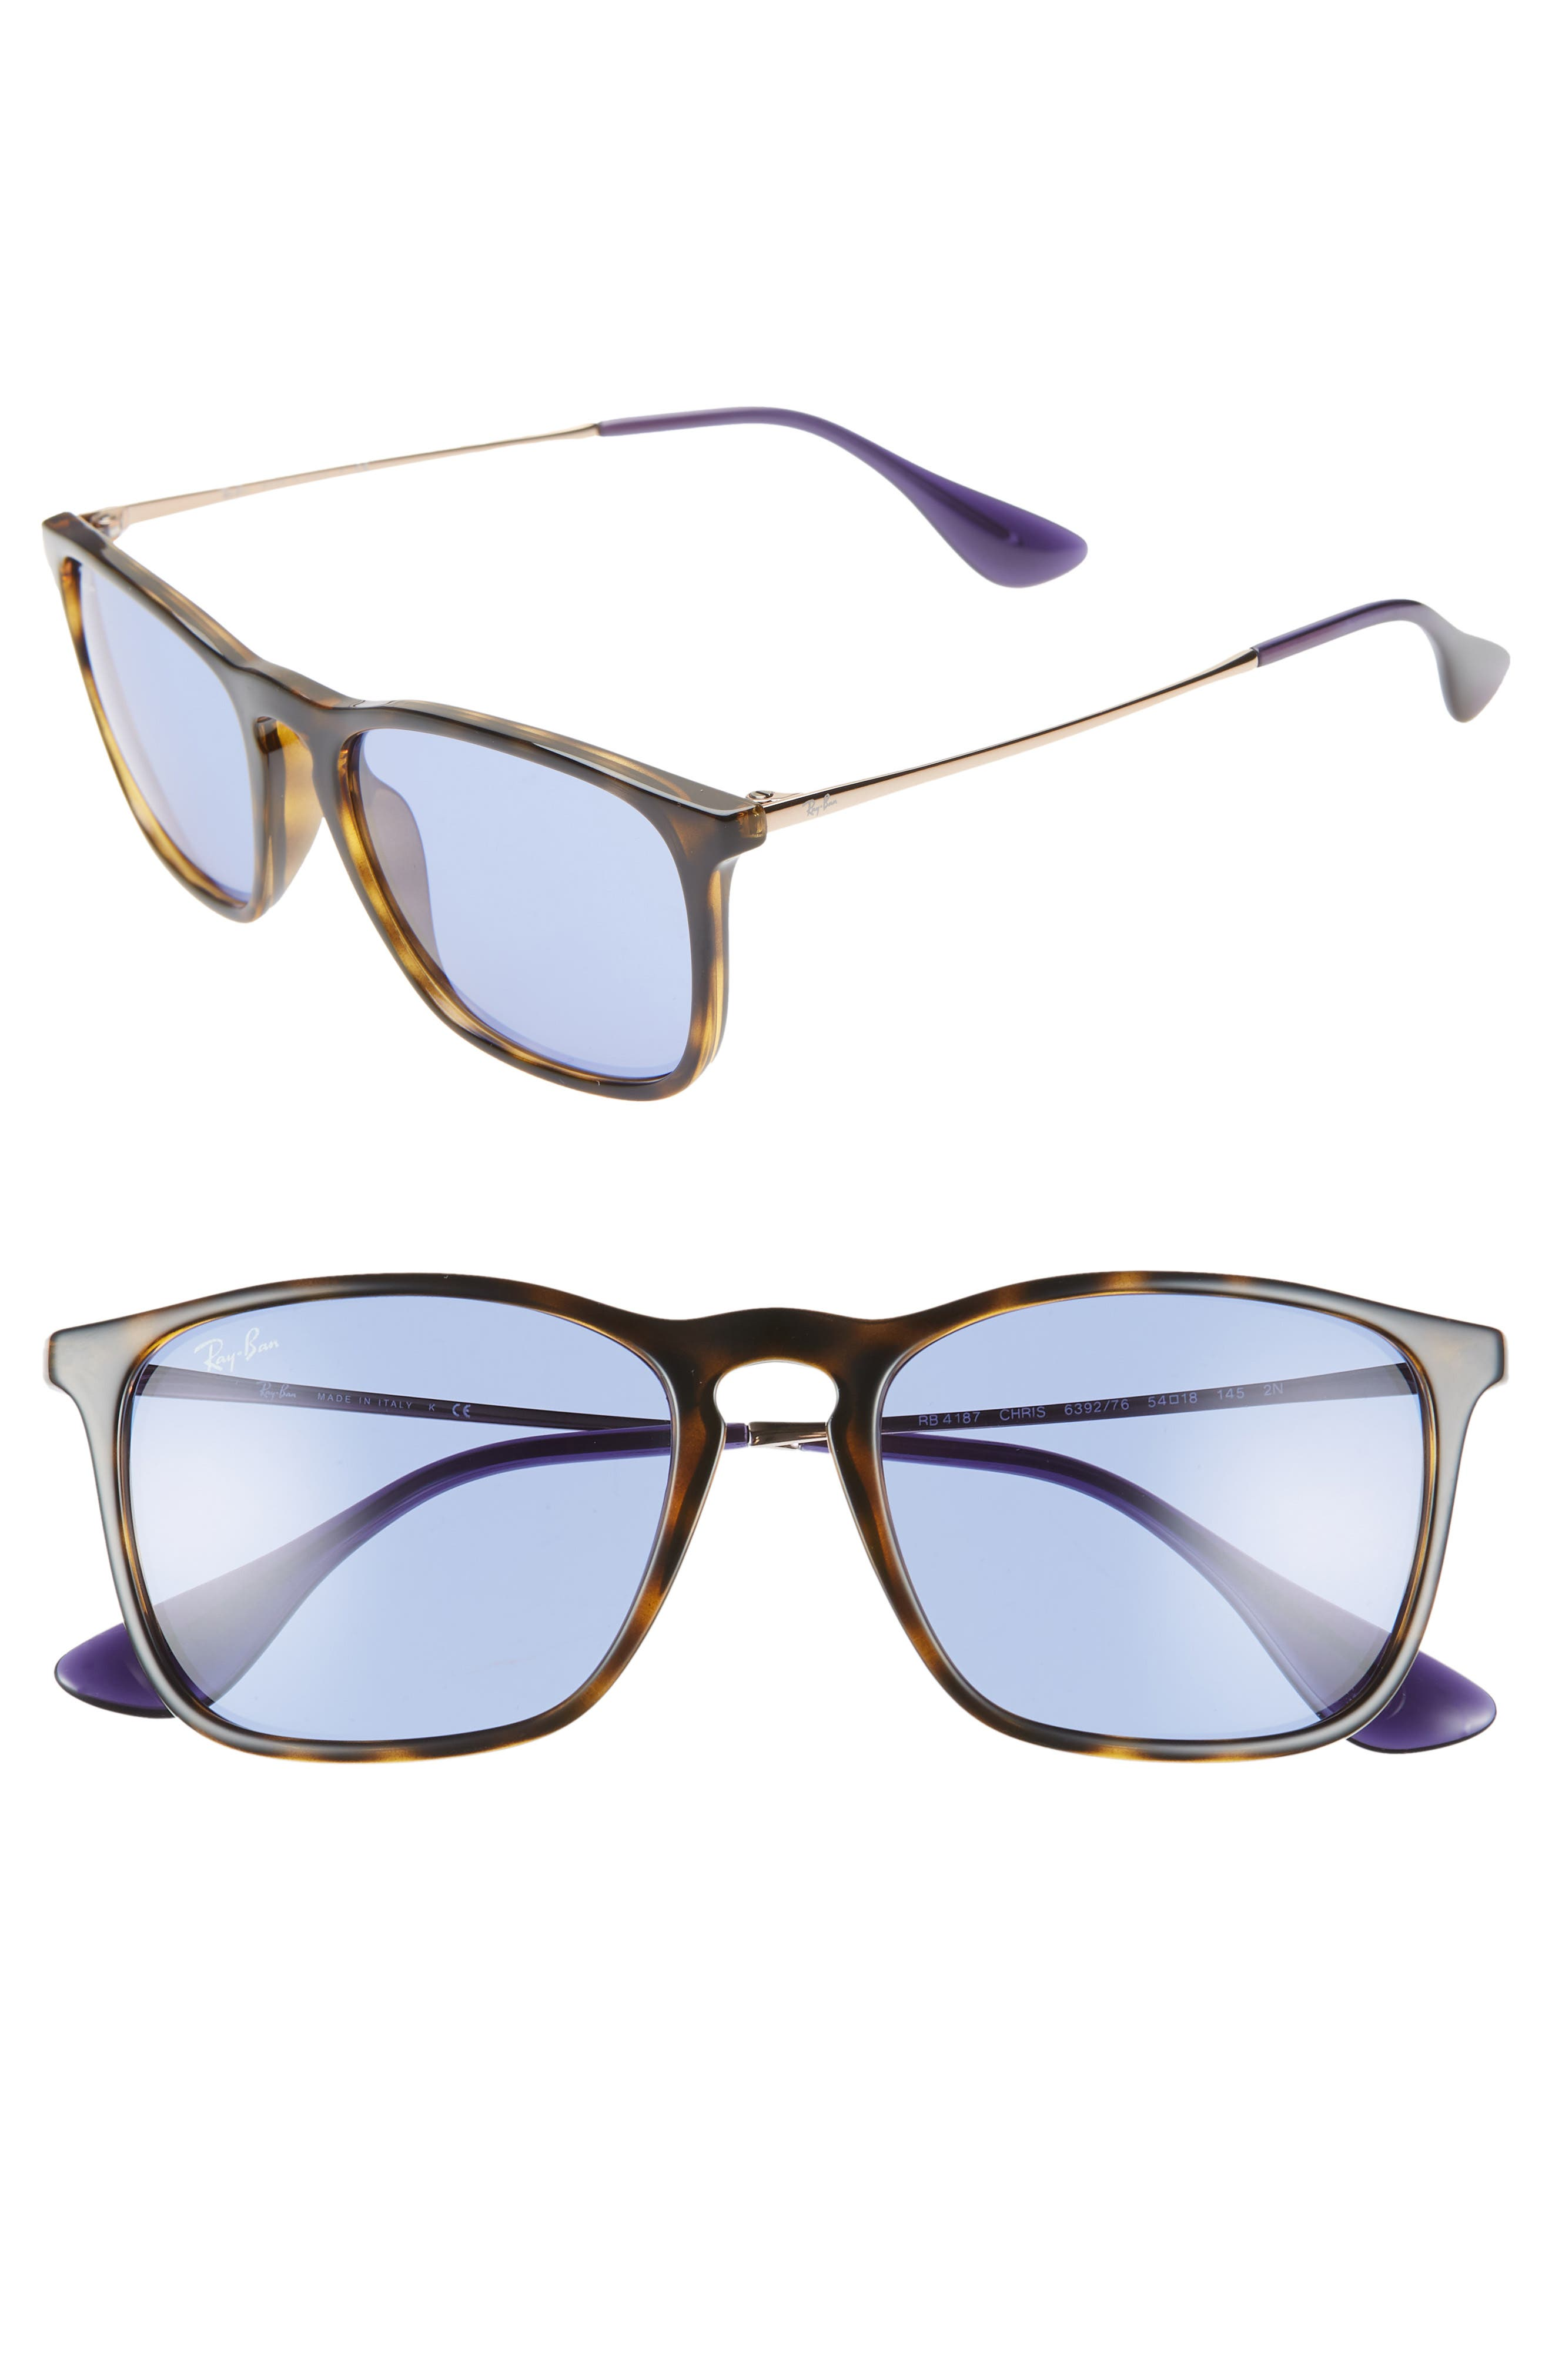 Ray-Ban Youngster 5m Square Keyhole Sunglasses - Havana/ Gold/ Blue Solid